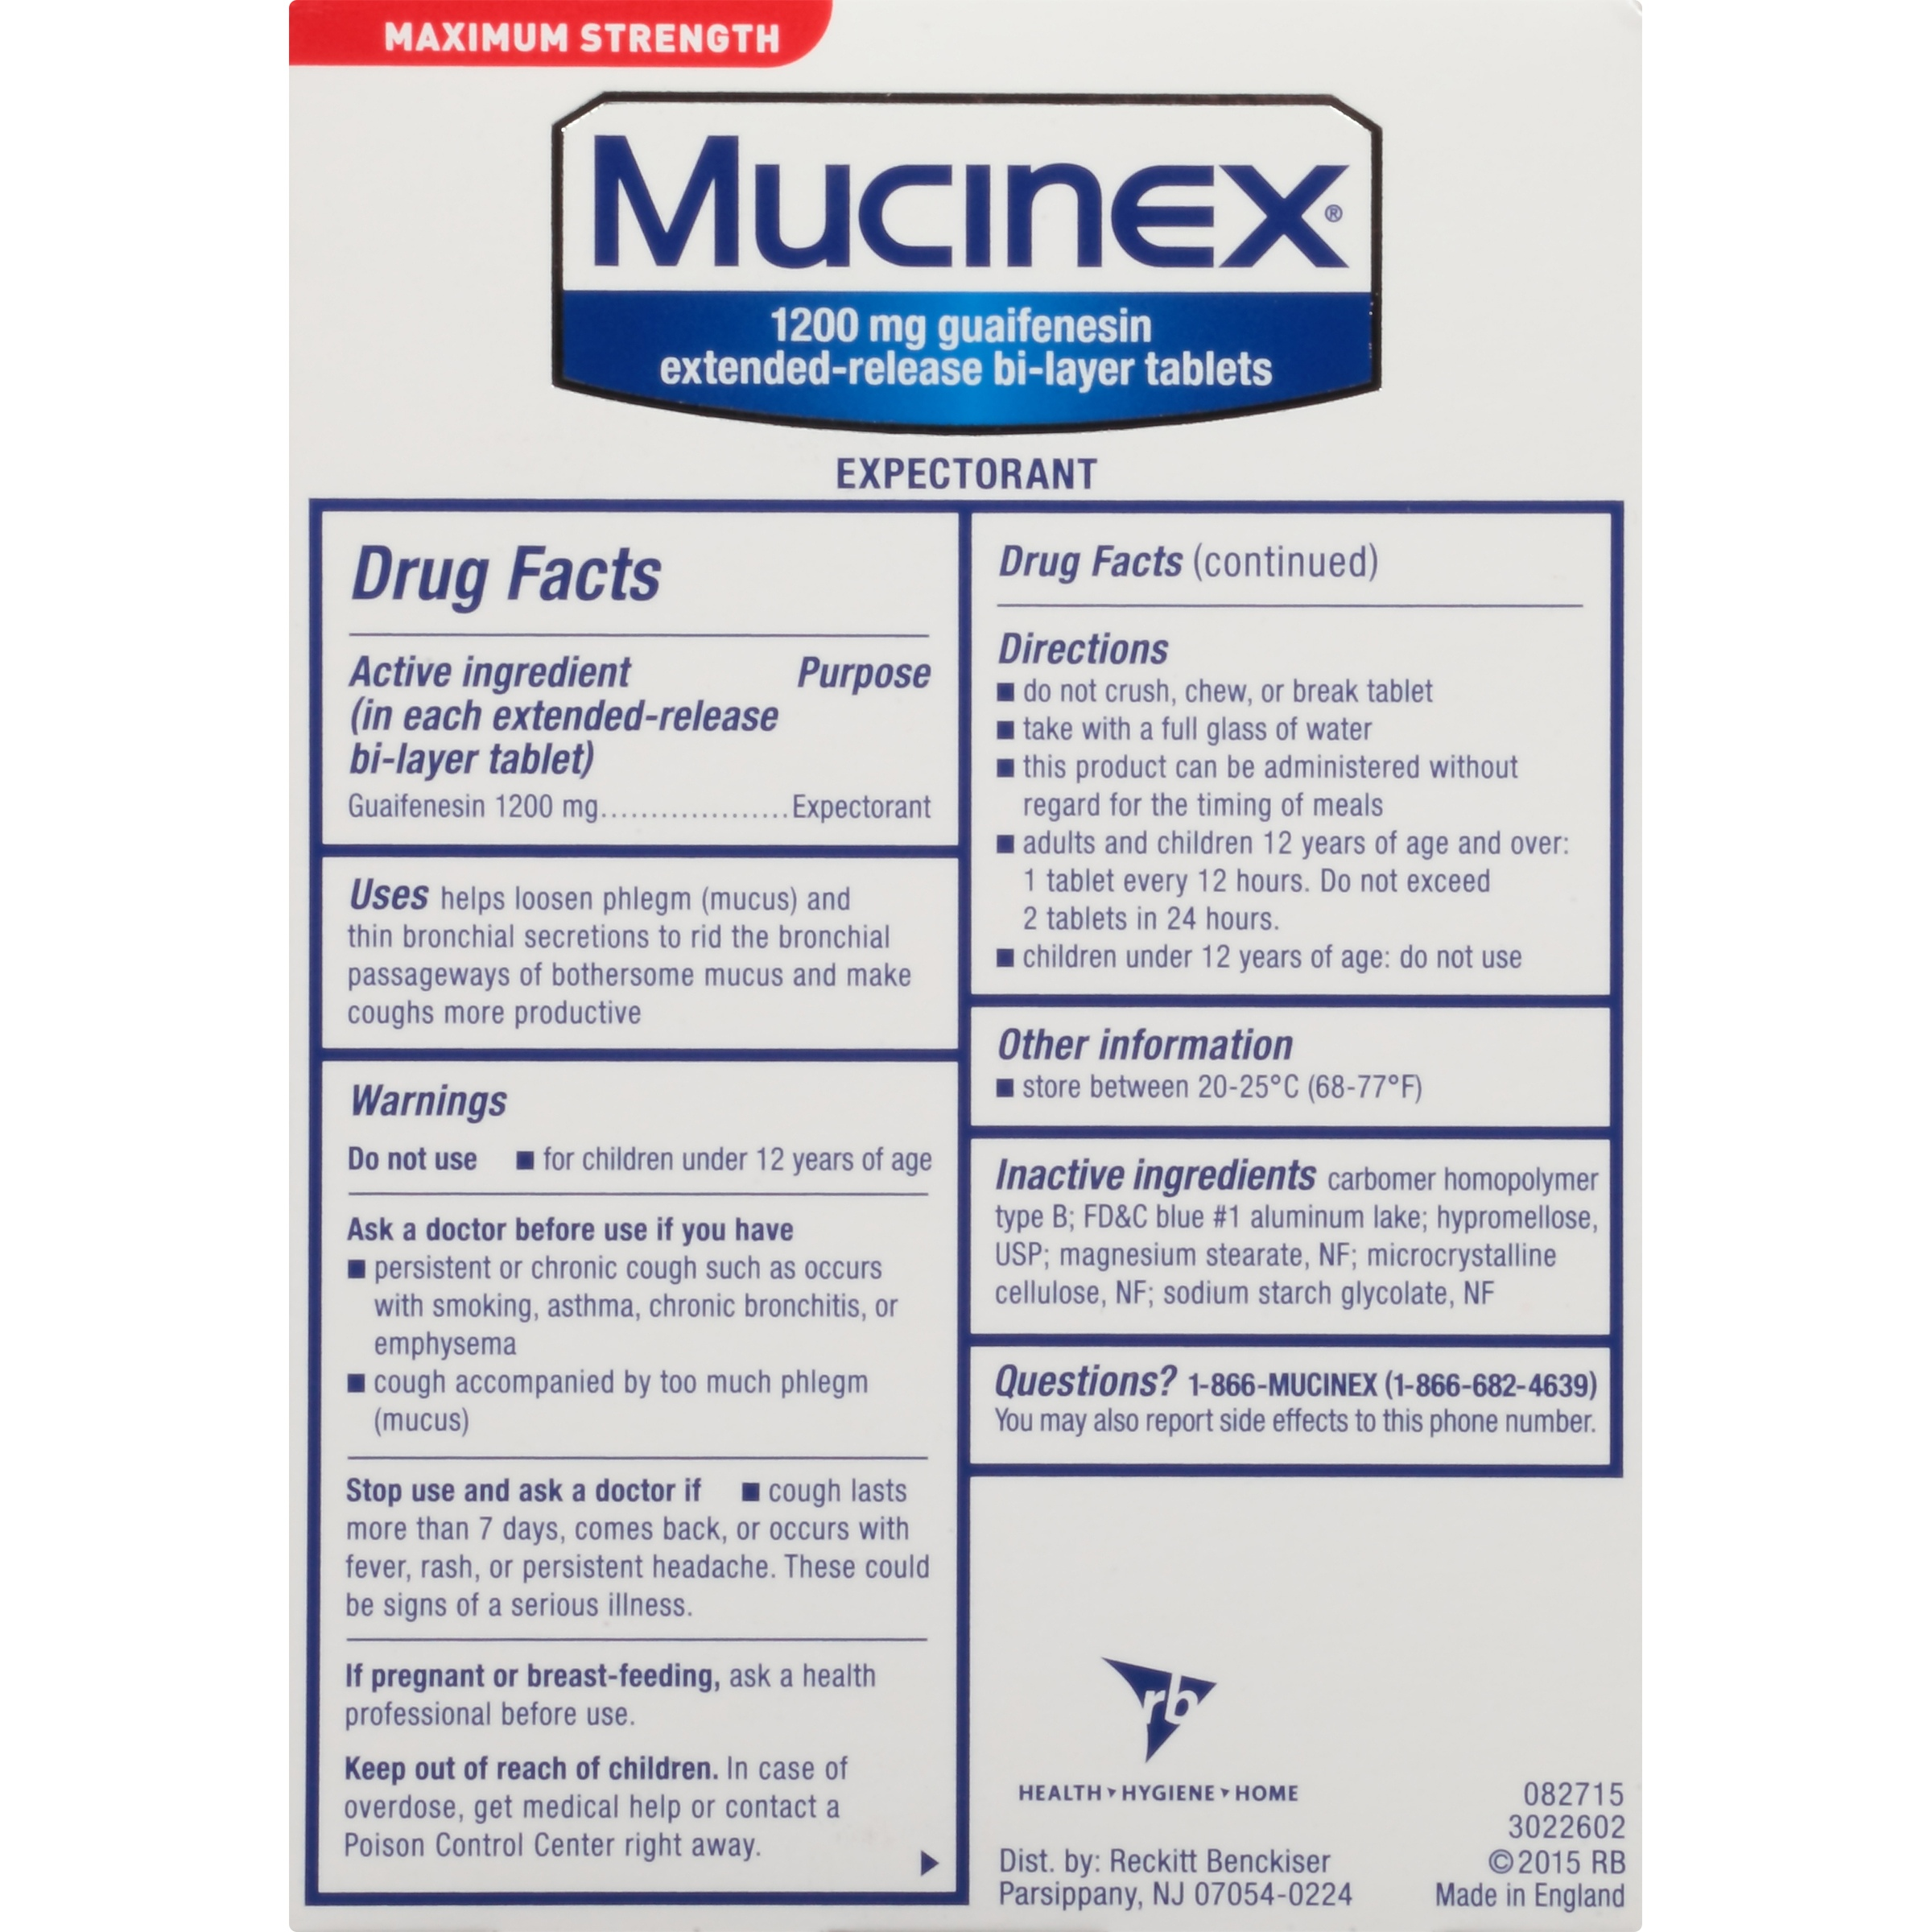 Mucinex Maximum Strength 12 Hour Expectorant Tablets, Chest Congestion  Relief, 1200 mg Guaifenesin, 28 Count